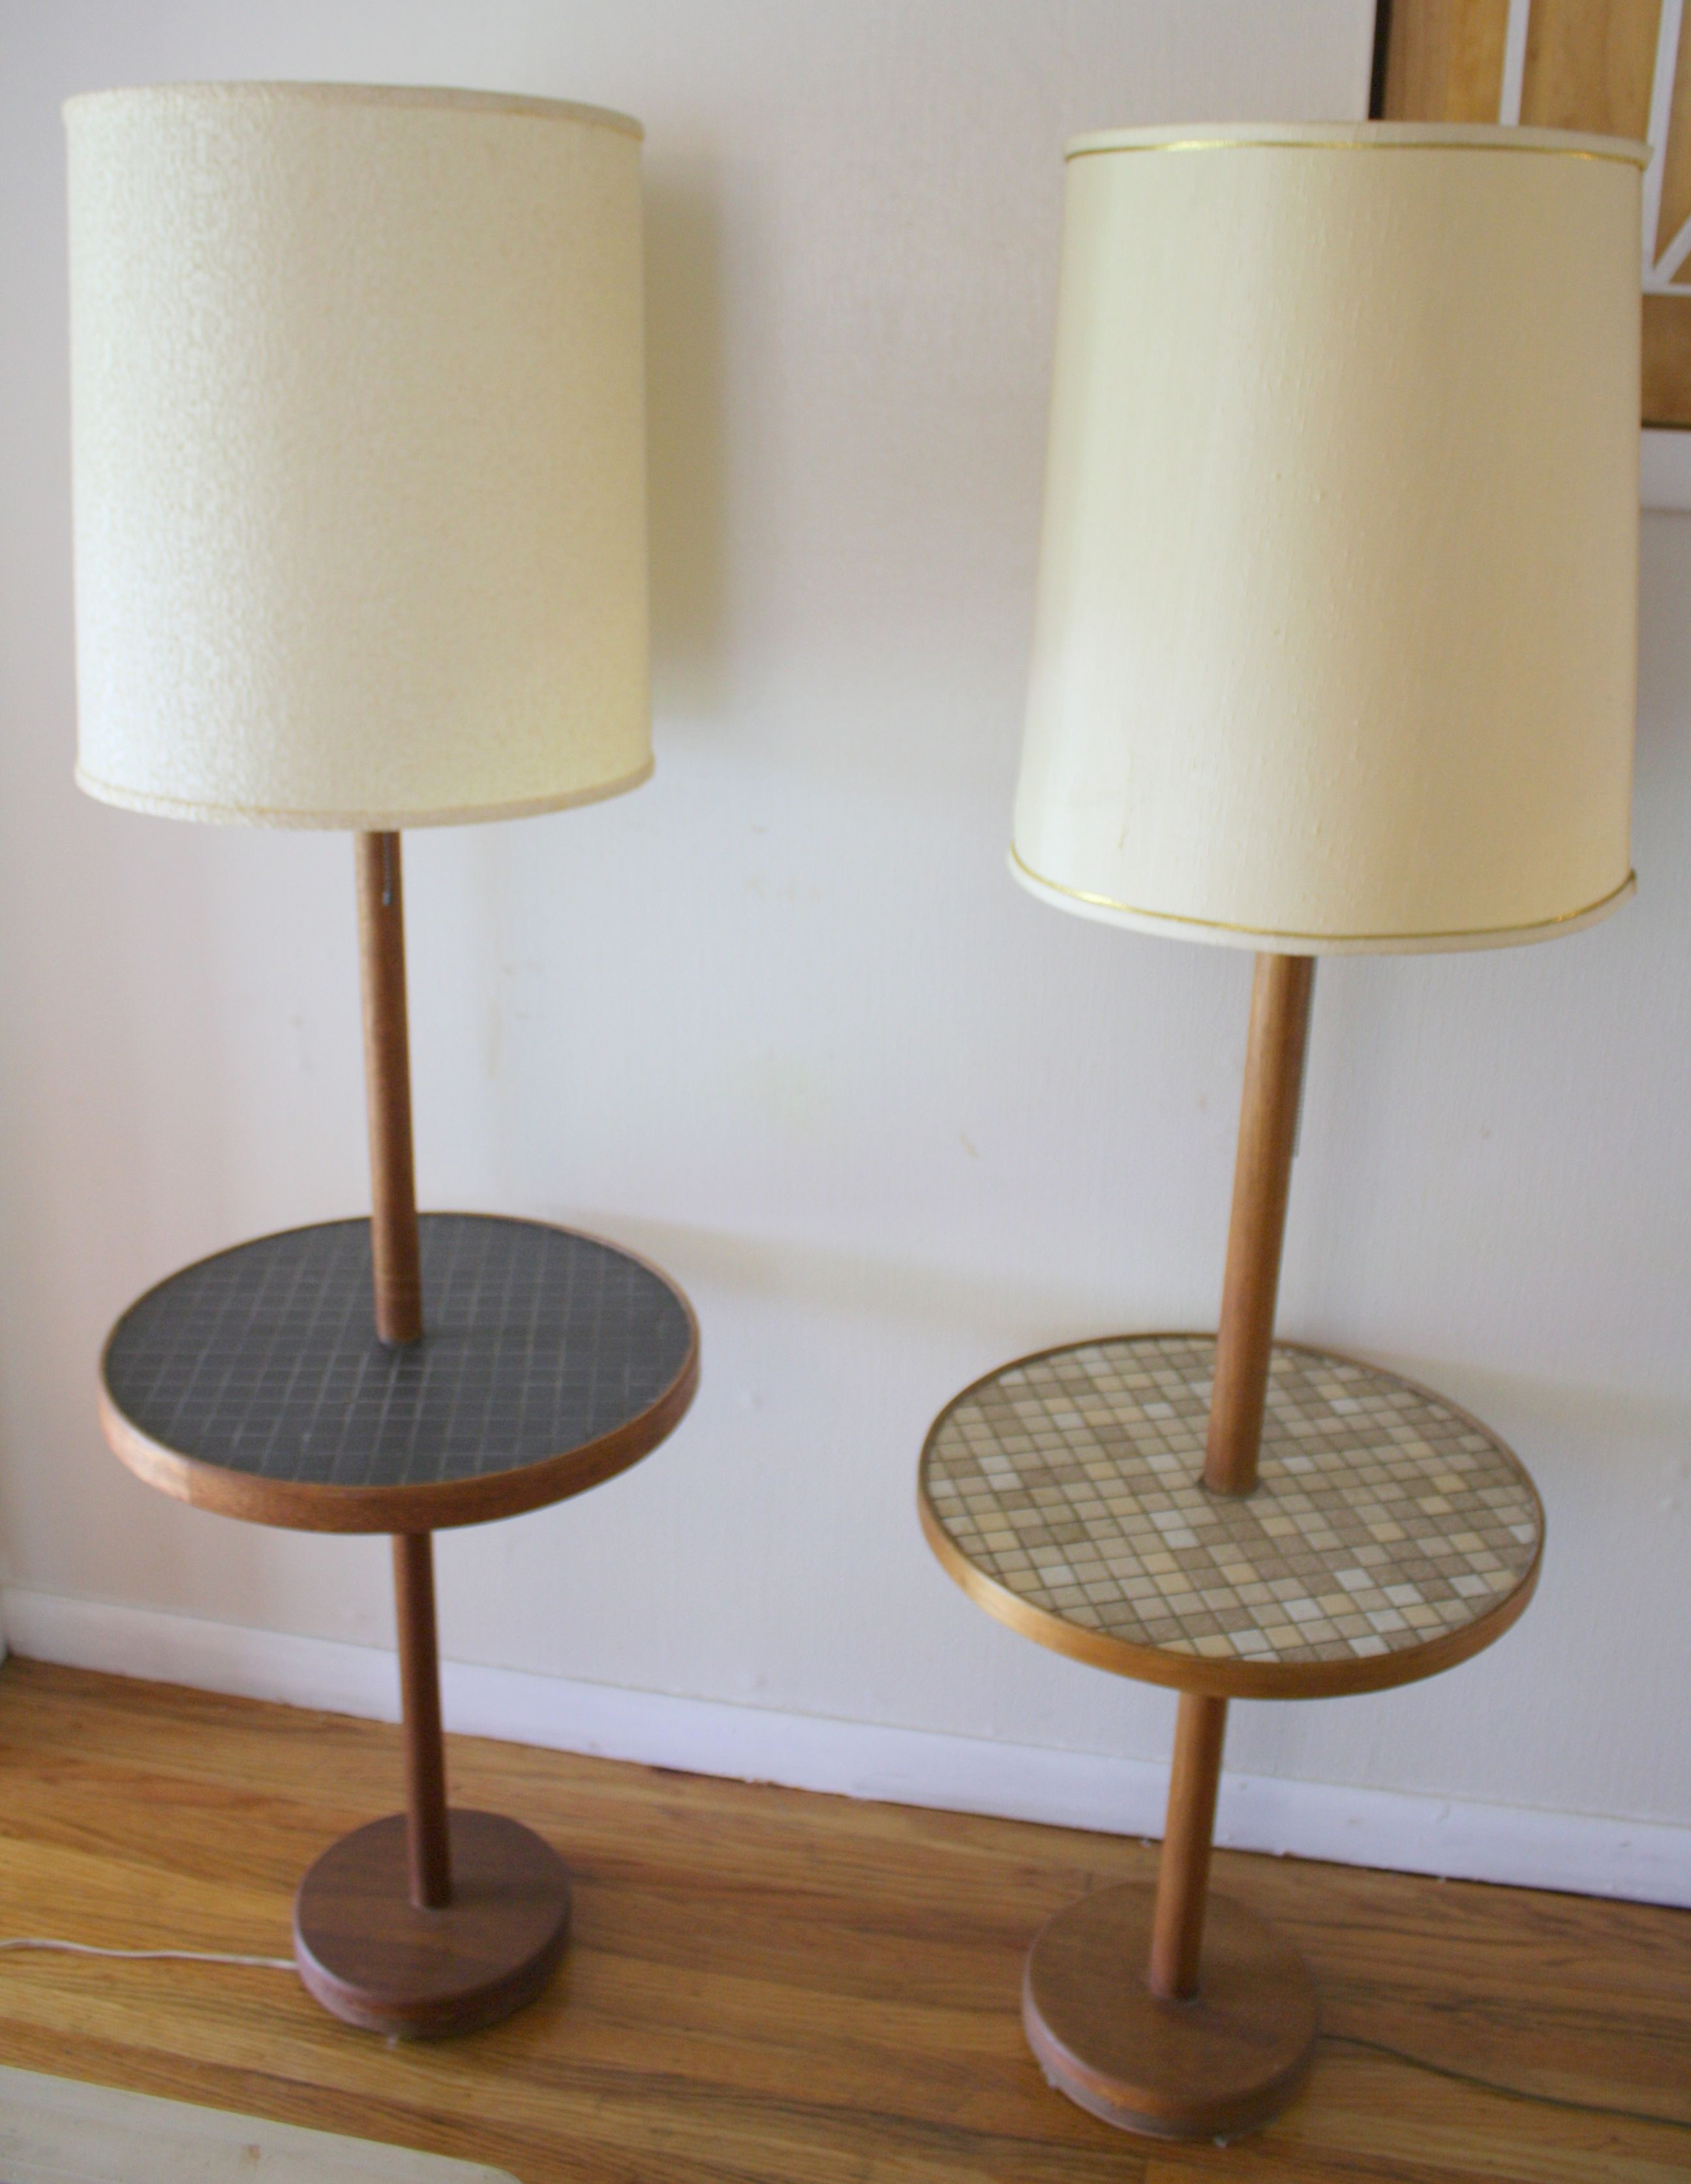 Vintage Lamp Attached To Table Mid Century Modern Table Lamps Mid Century Modern Floor Lamps Mid Century Floor Lamps